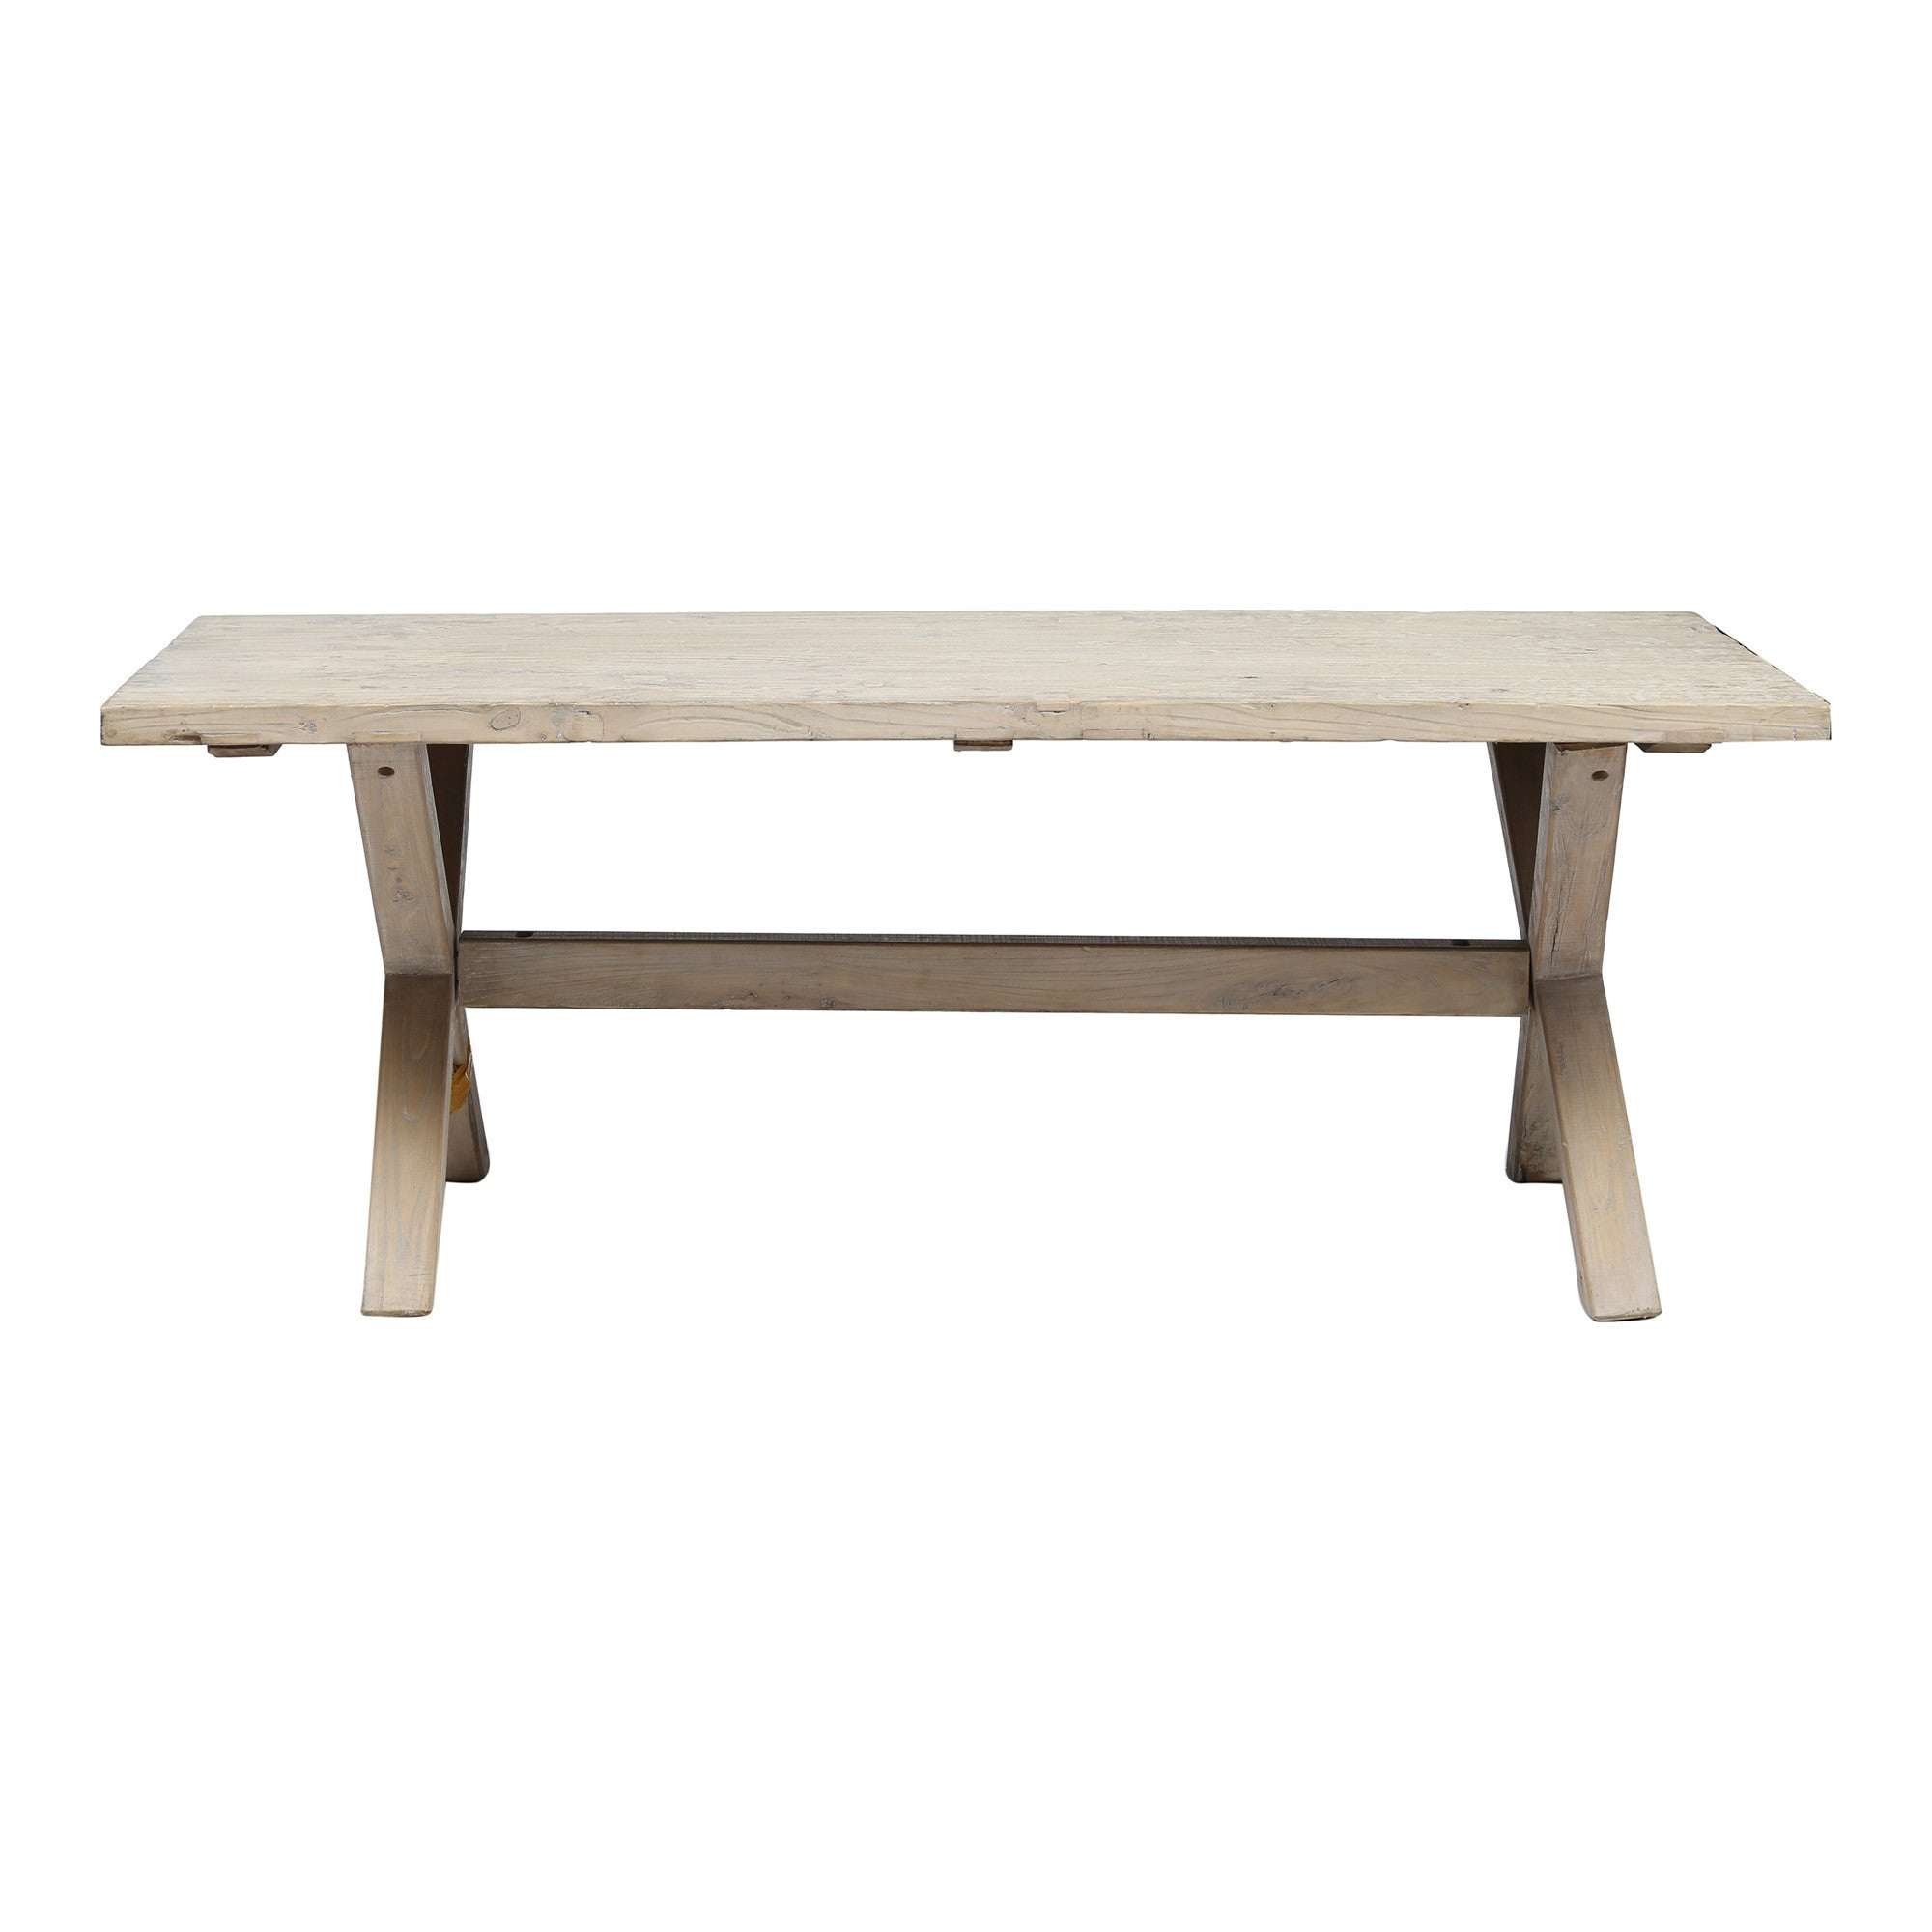 Contemporary Rustic Chinese Dining Table